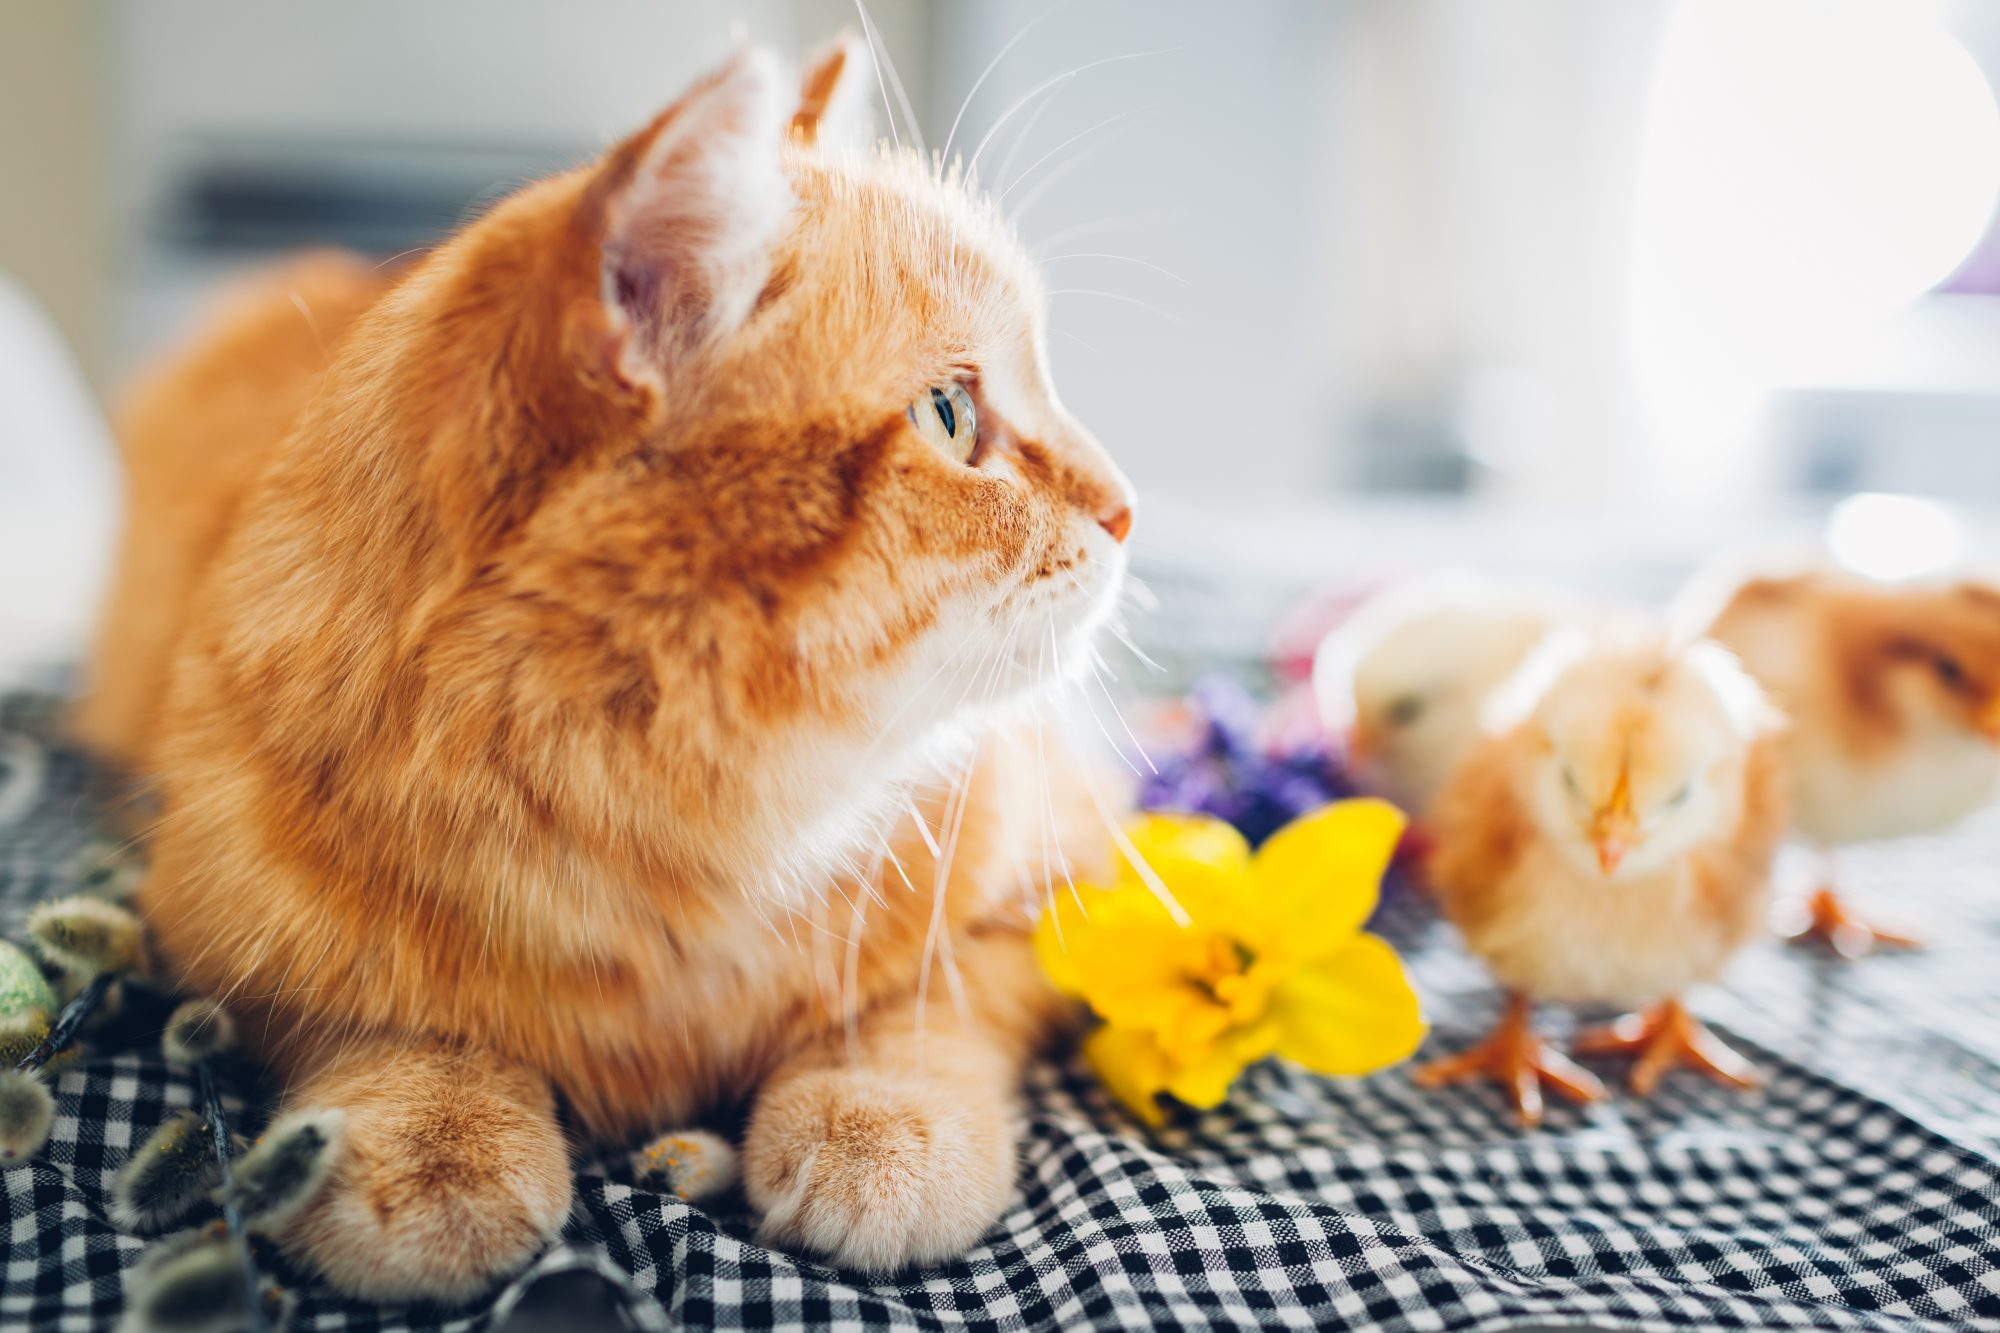 Baby chicks play next to orange tabby kitten